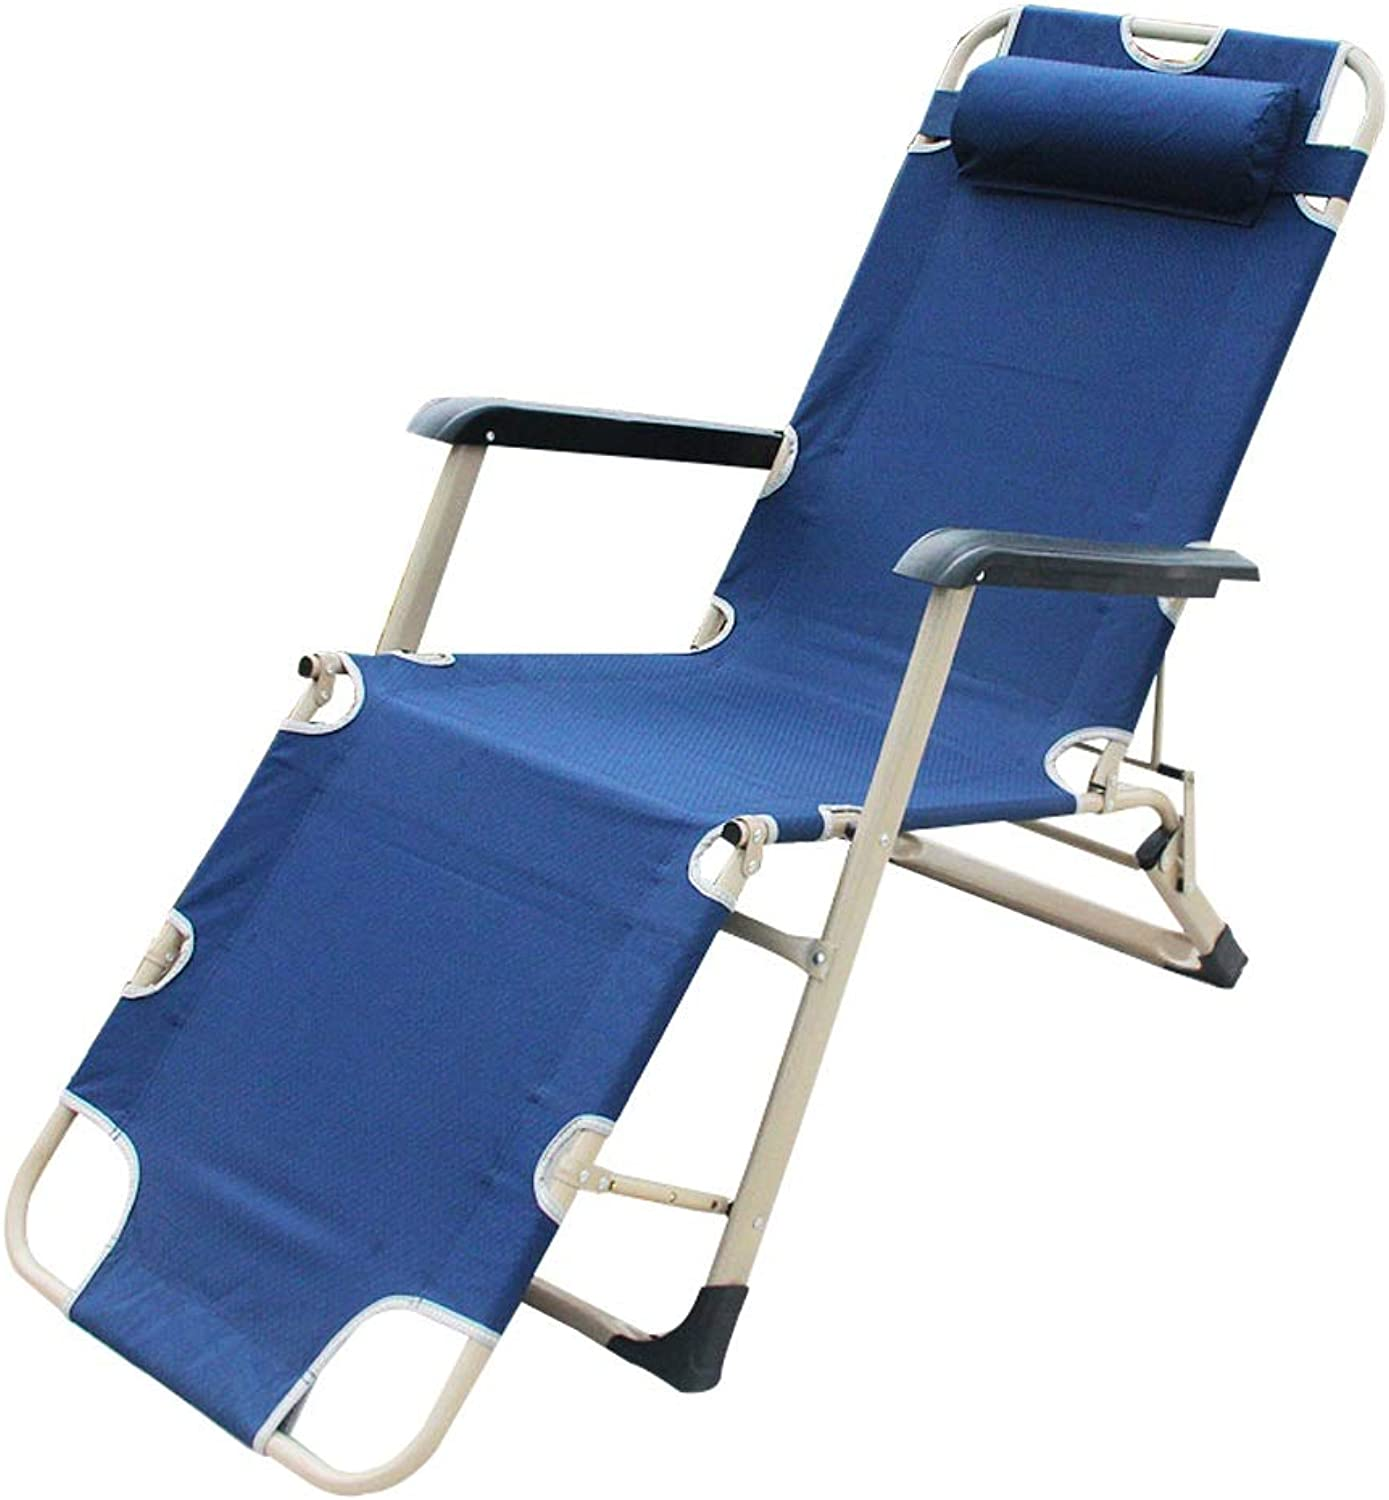 Siesta Bed Lounge Chair  Folding Bed Single Bed  Office Napping Bed Both Sides Reinforced MultiFunction Folding Bed, bluee, 178  59  22cm